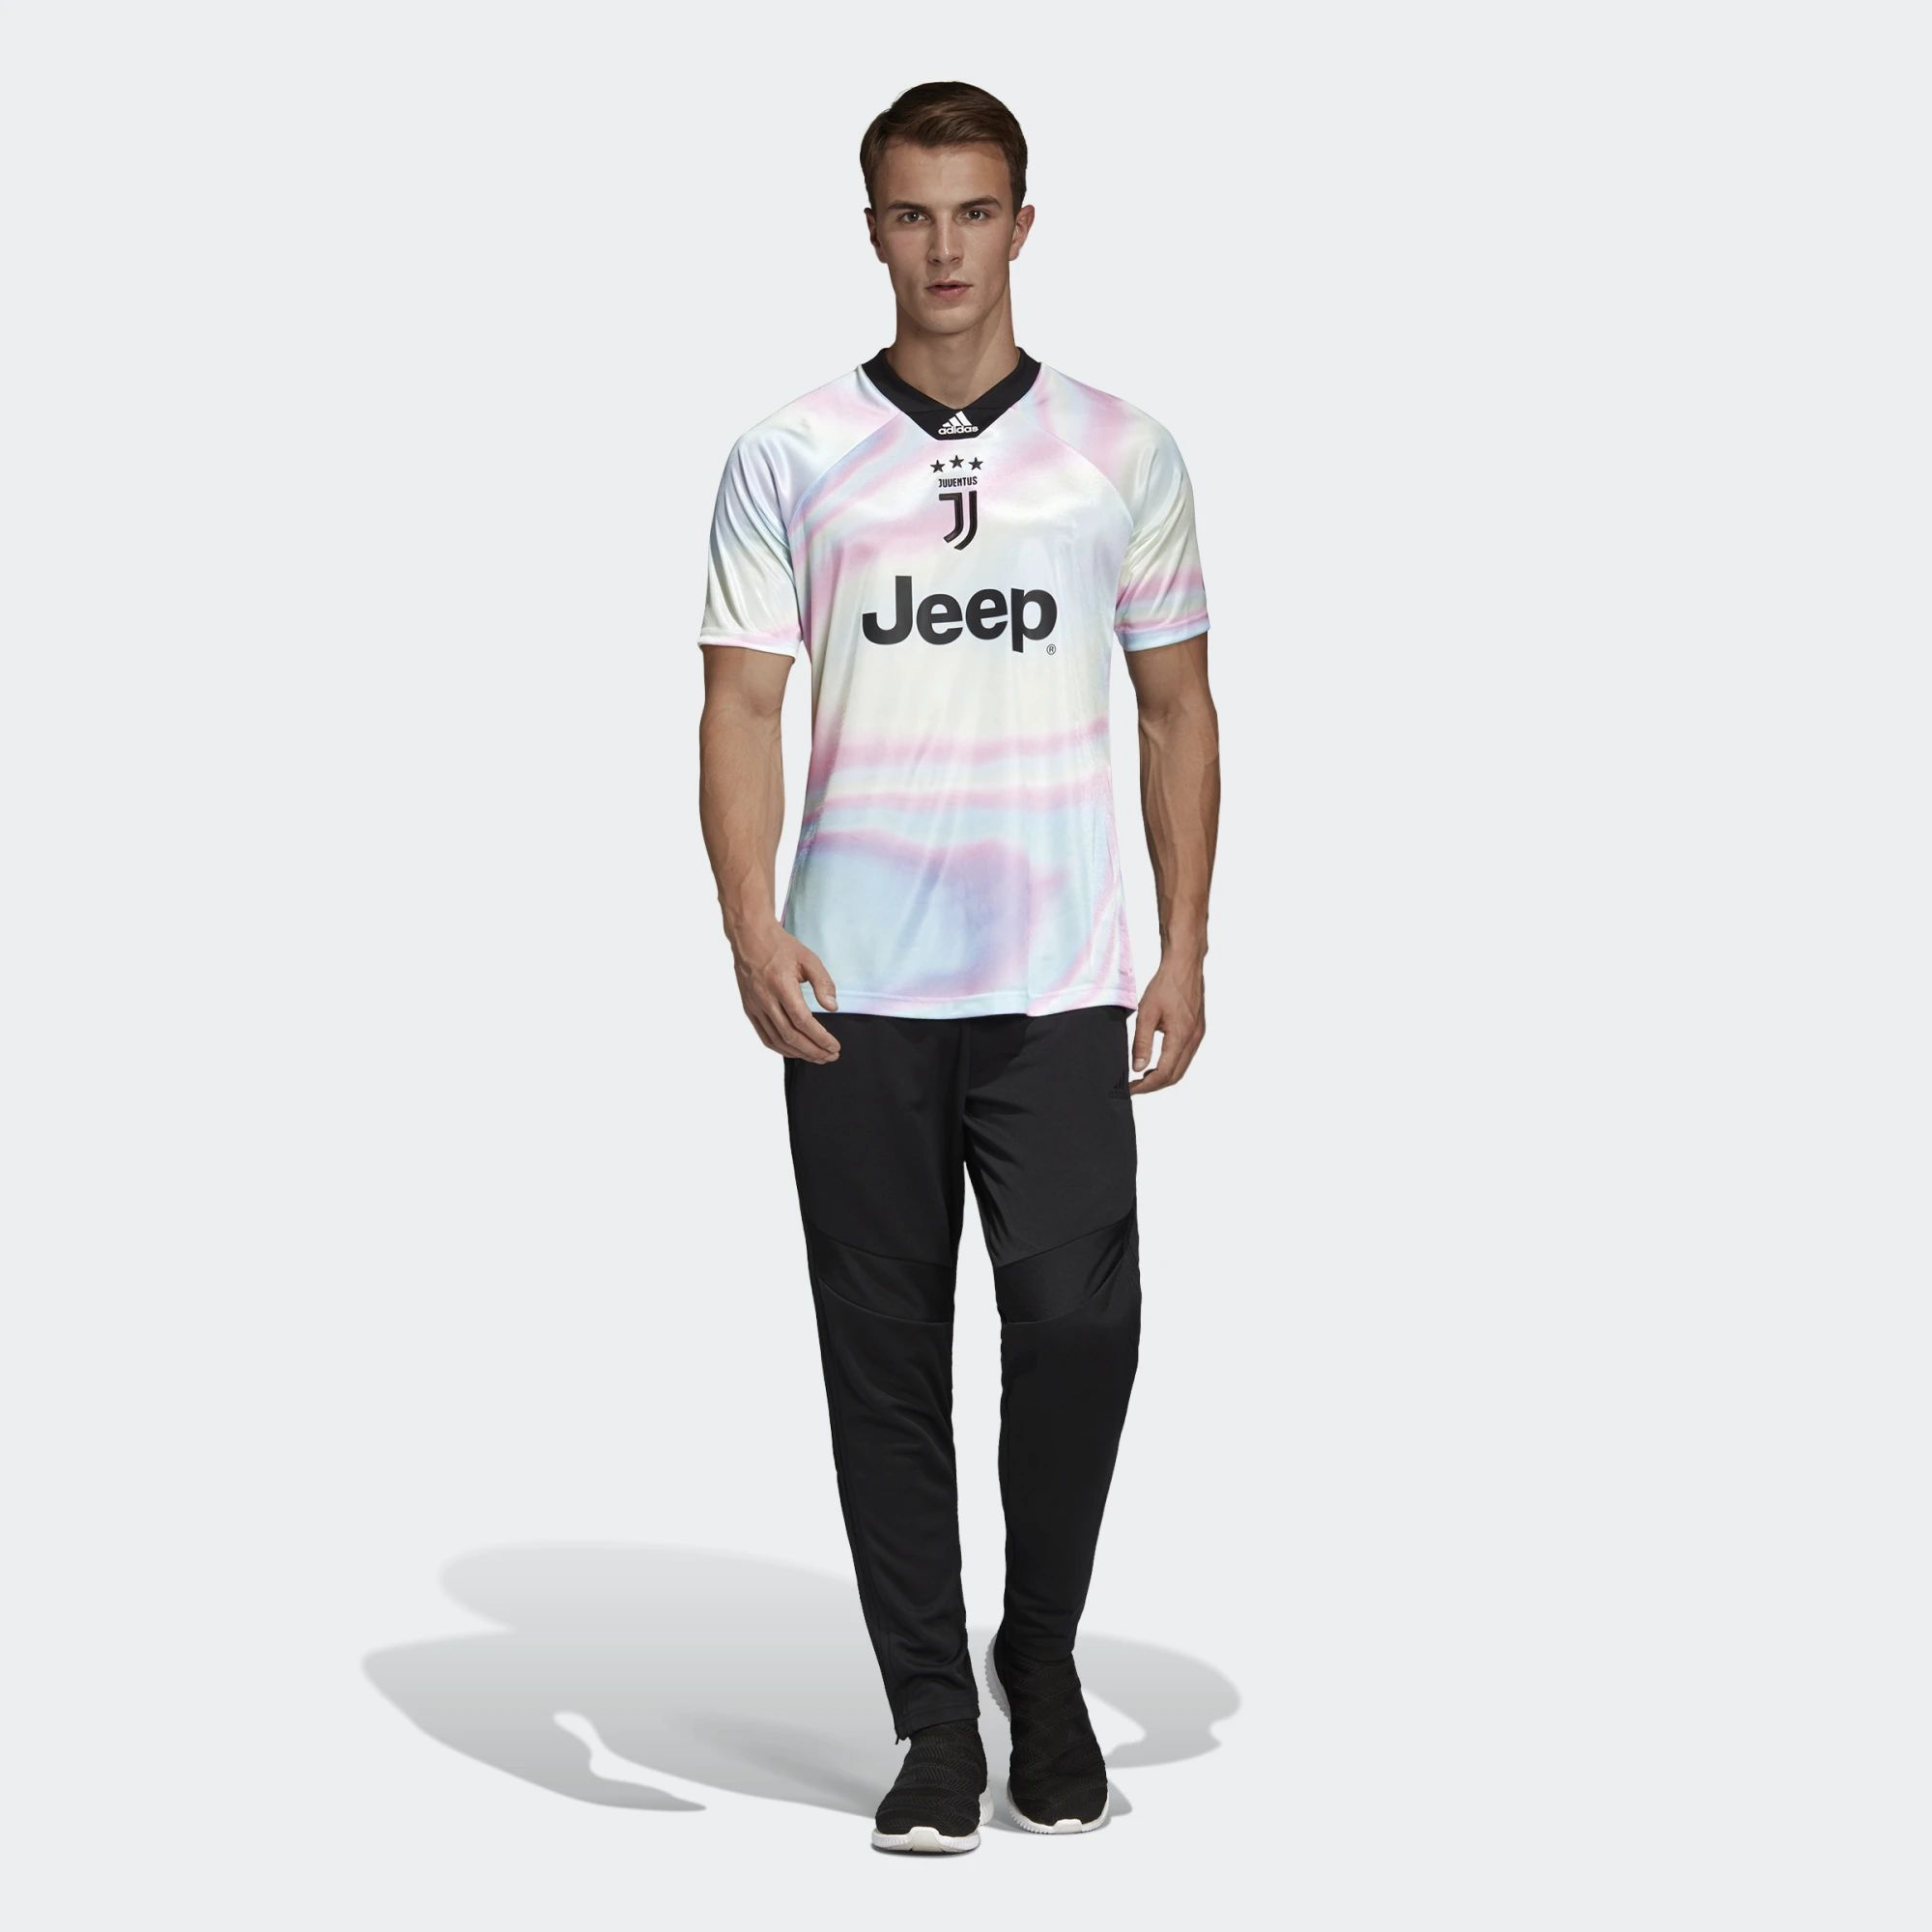 low priced e61ae f3aac Juventus X Adidas X Fifa 19 Digital Fourth Kit | 18/19 Kits ...